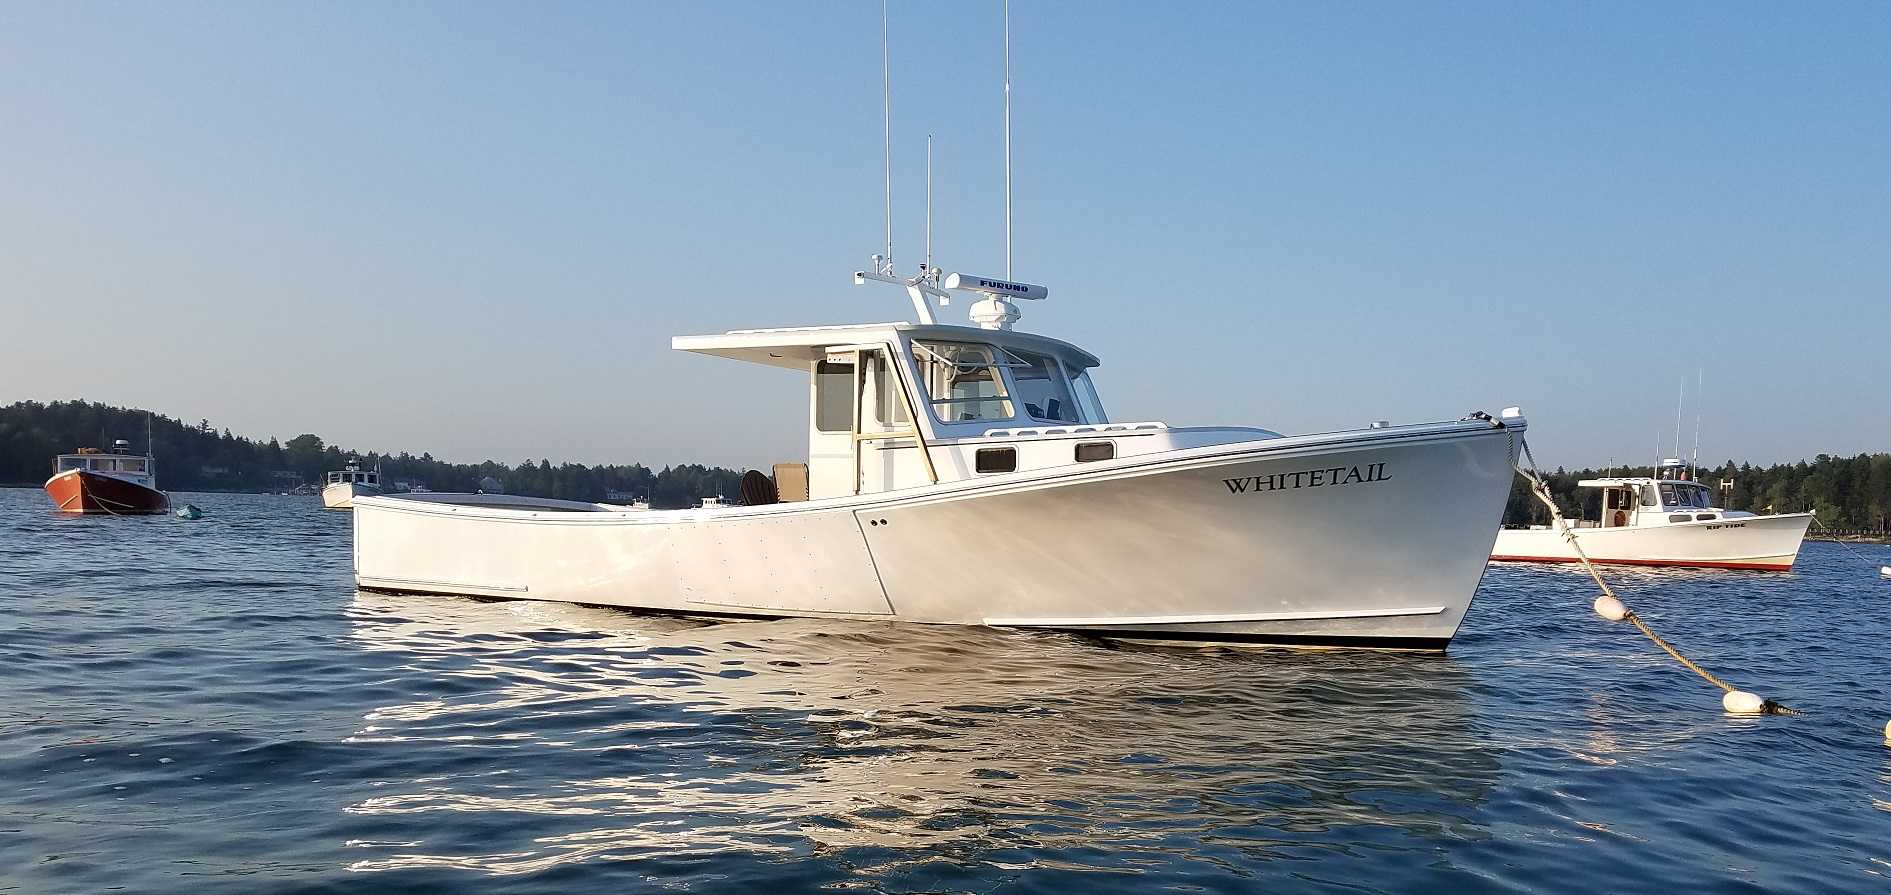 Lobster Boats For Sale - Buy or Sell Lobster Boats - Lobster Boat Sales